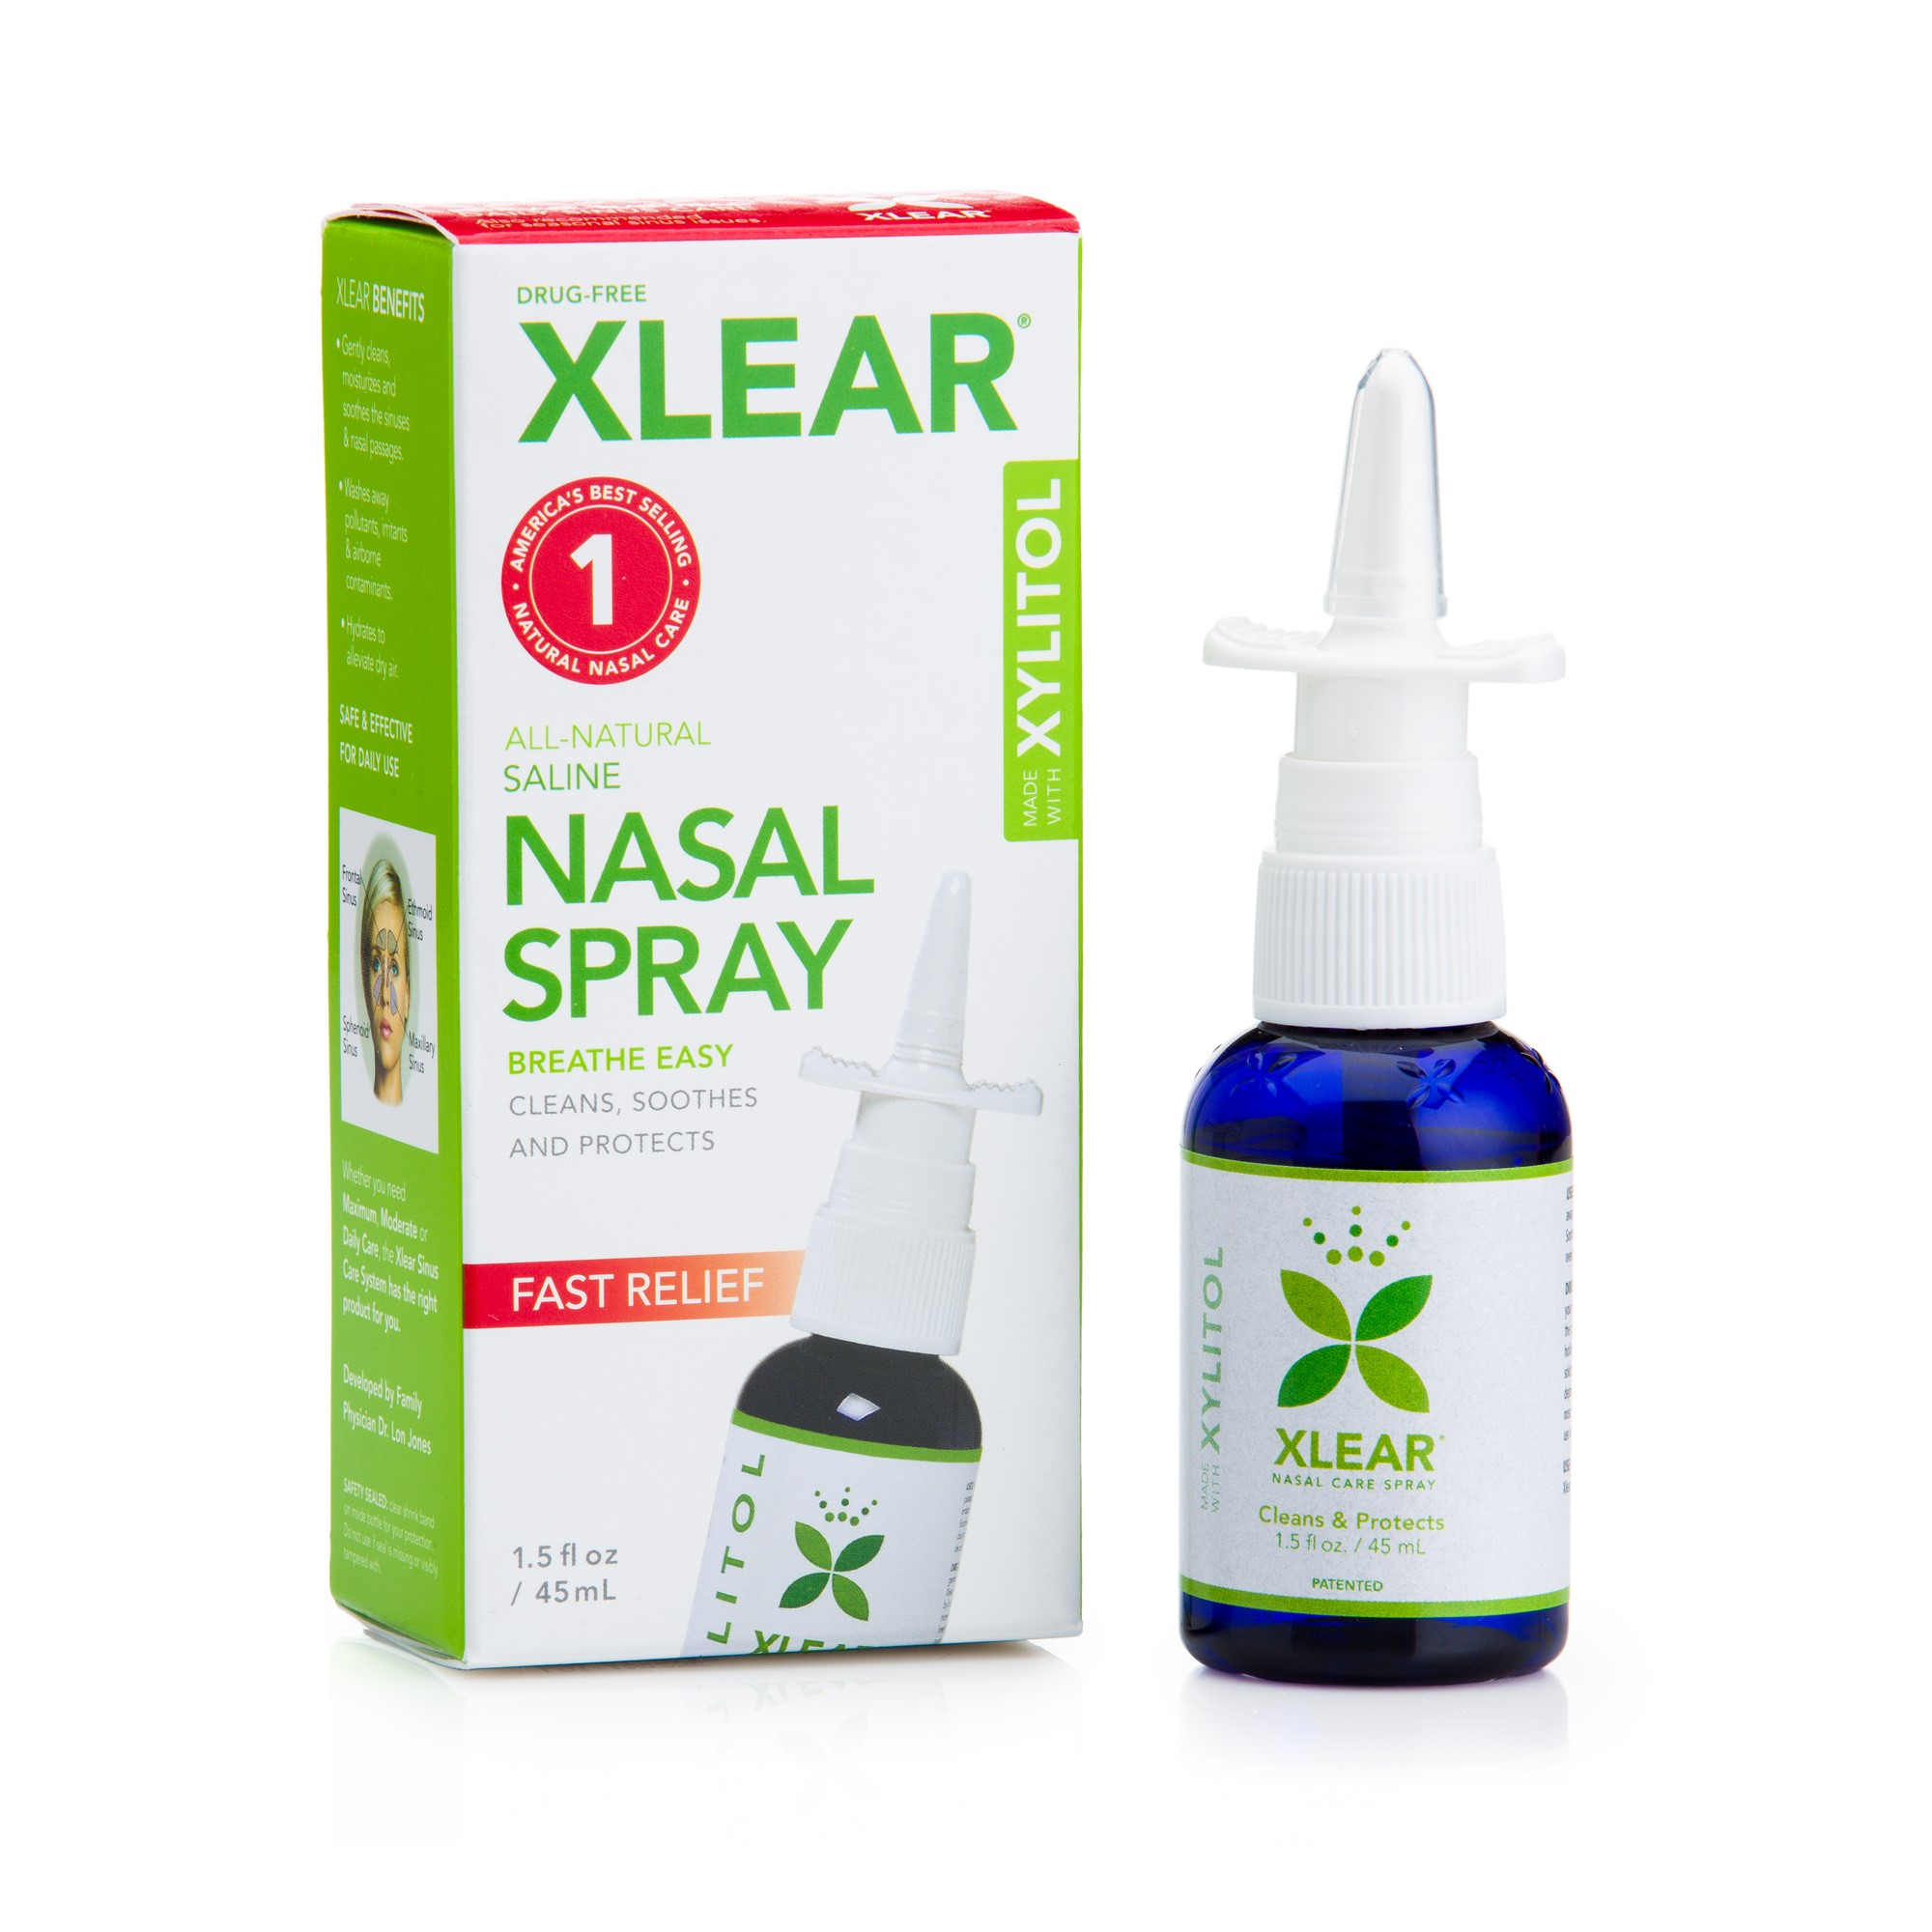 Xlear All Natural Saline Nasal Spray, 1.5 Fl Oz